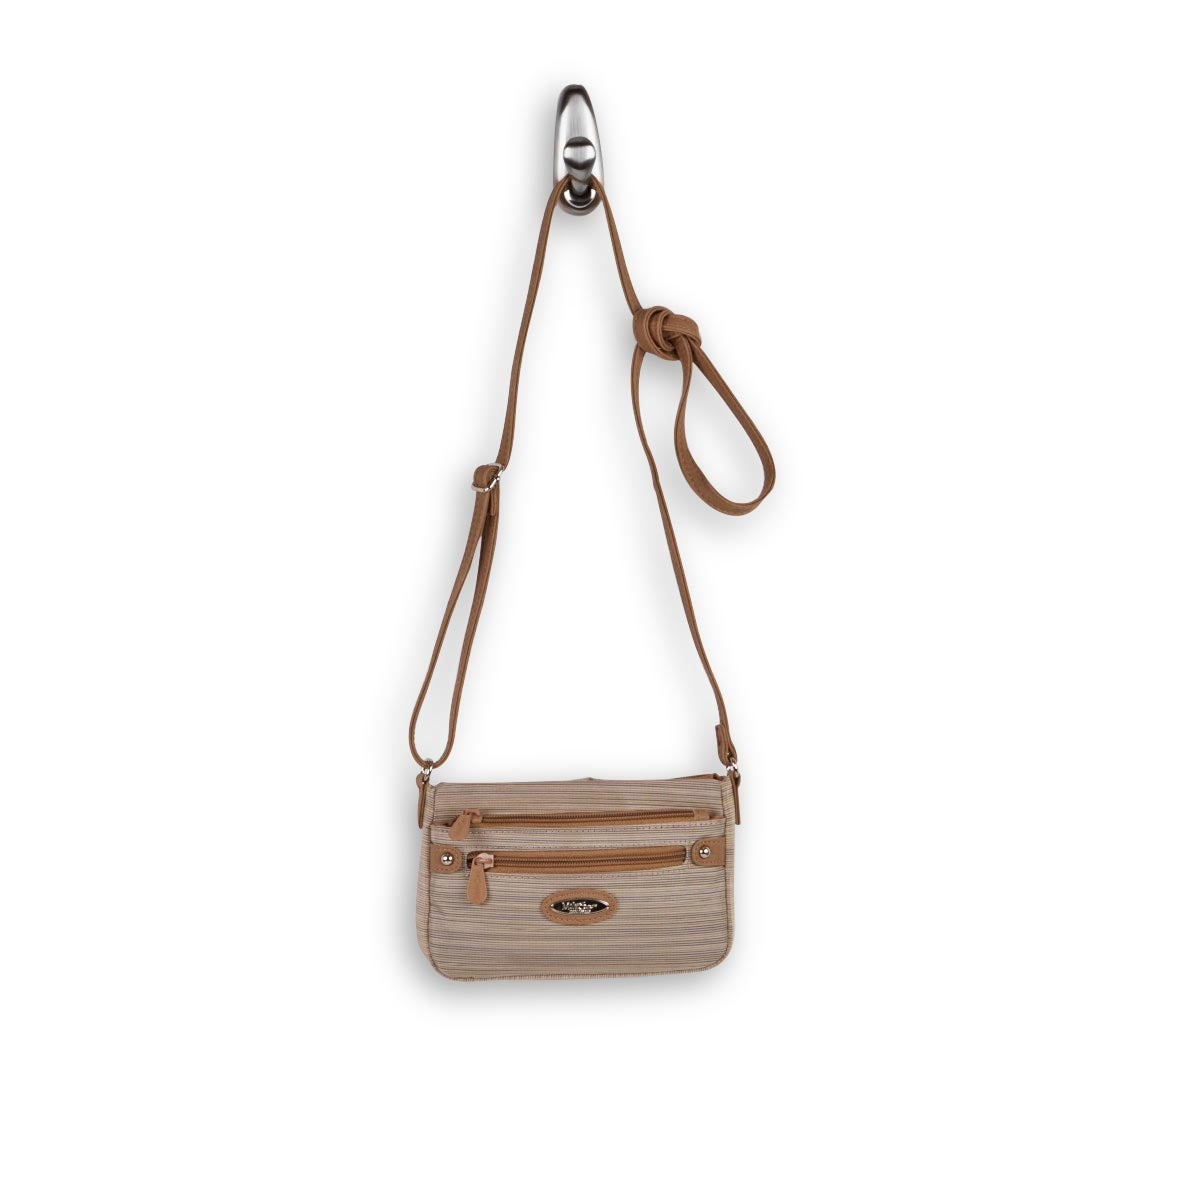 Lds Micro Sleek chino crossbody bag